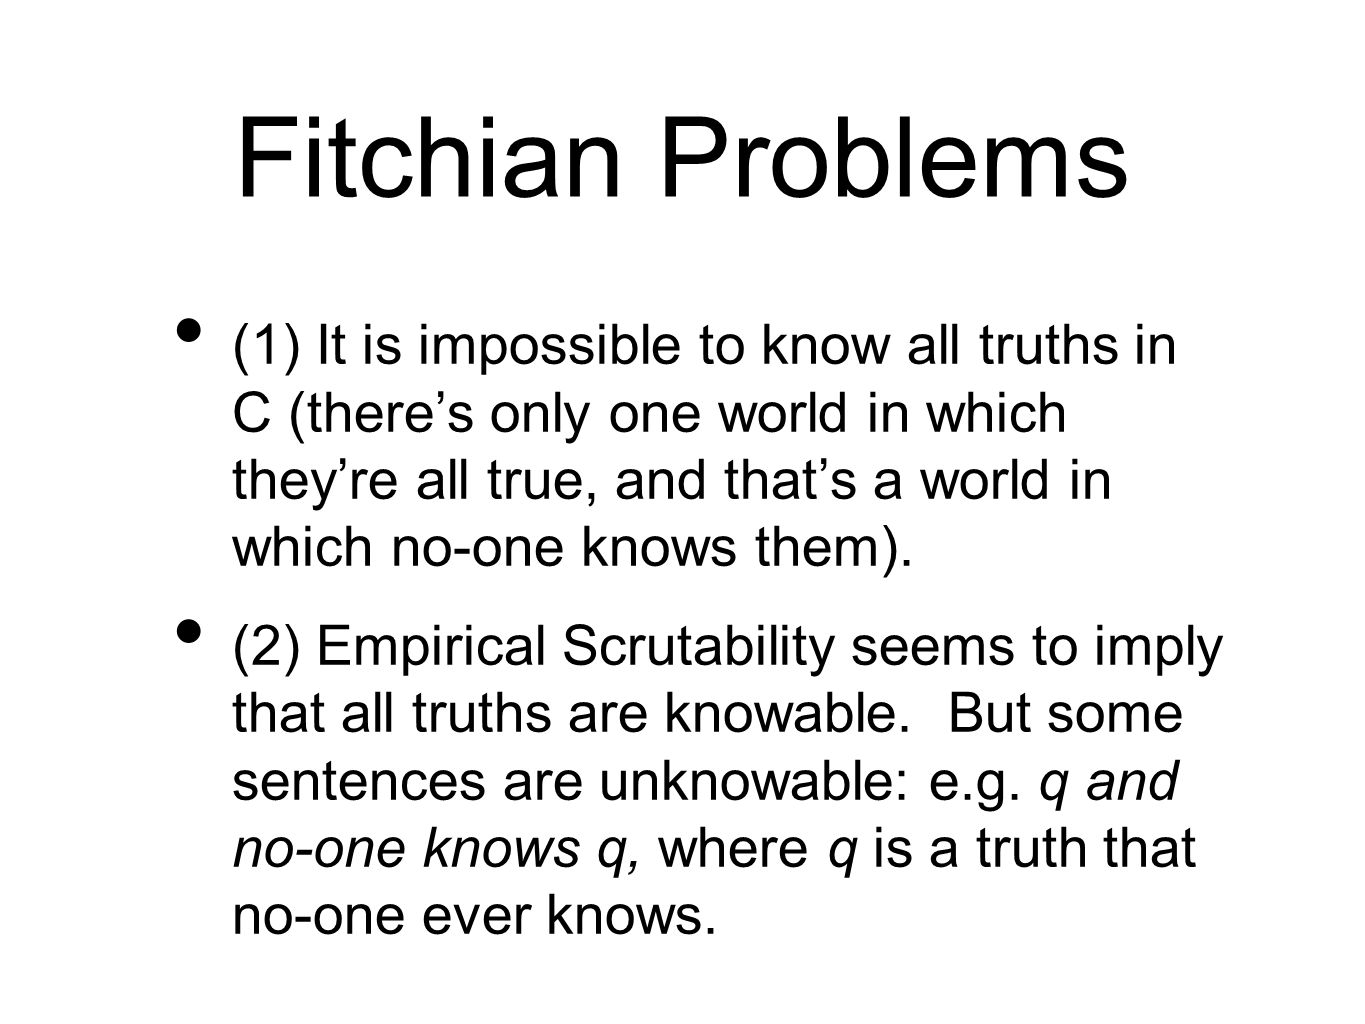 Fitchian Problems (1) It is impossible to know all truths in C (theres only one world in which theyre all true, and thats a world in which no-one knows them).